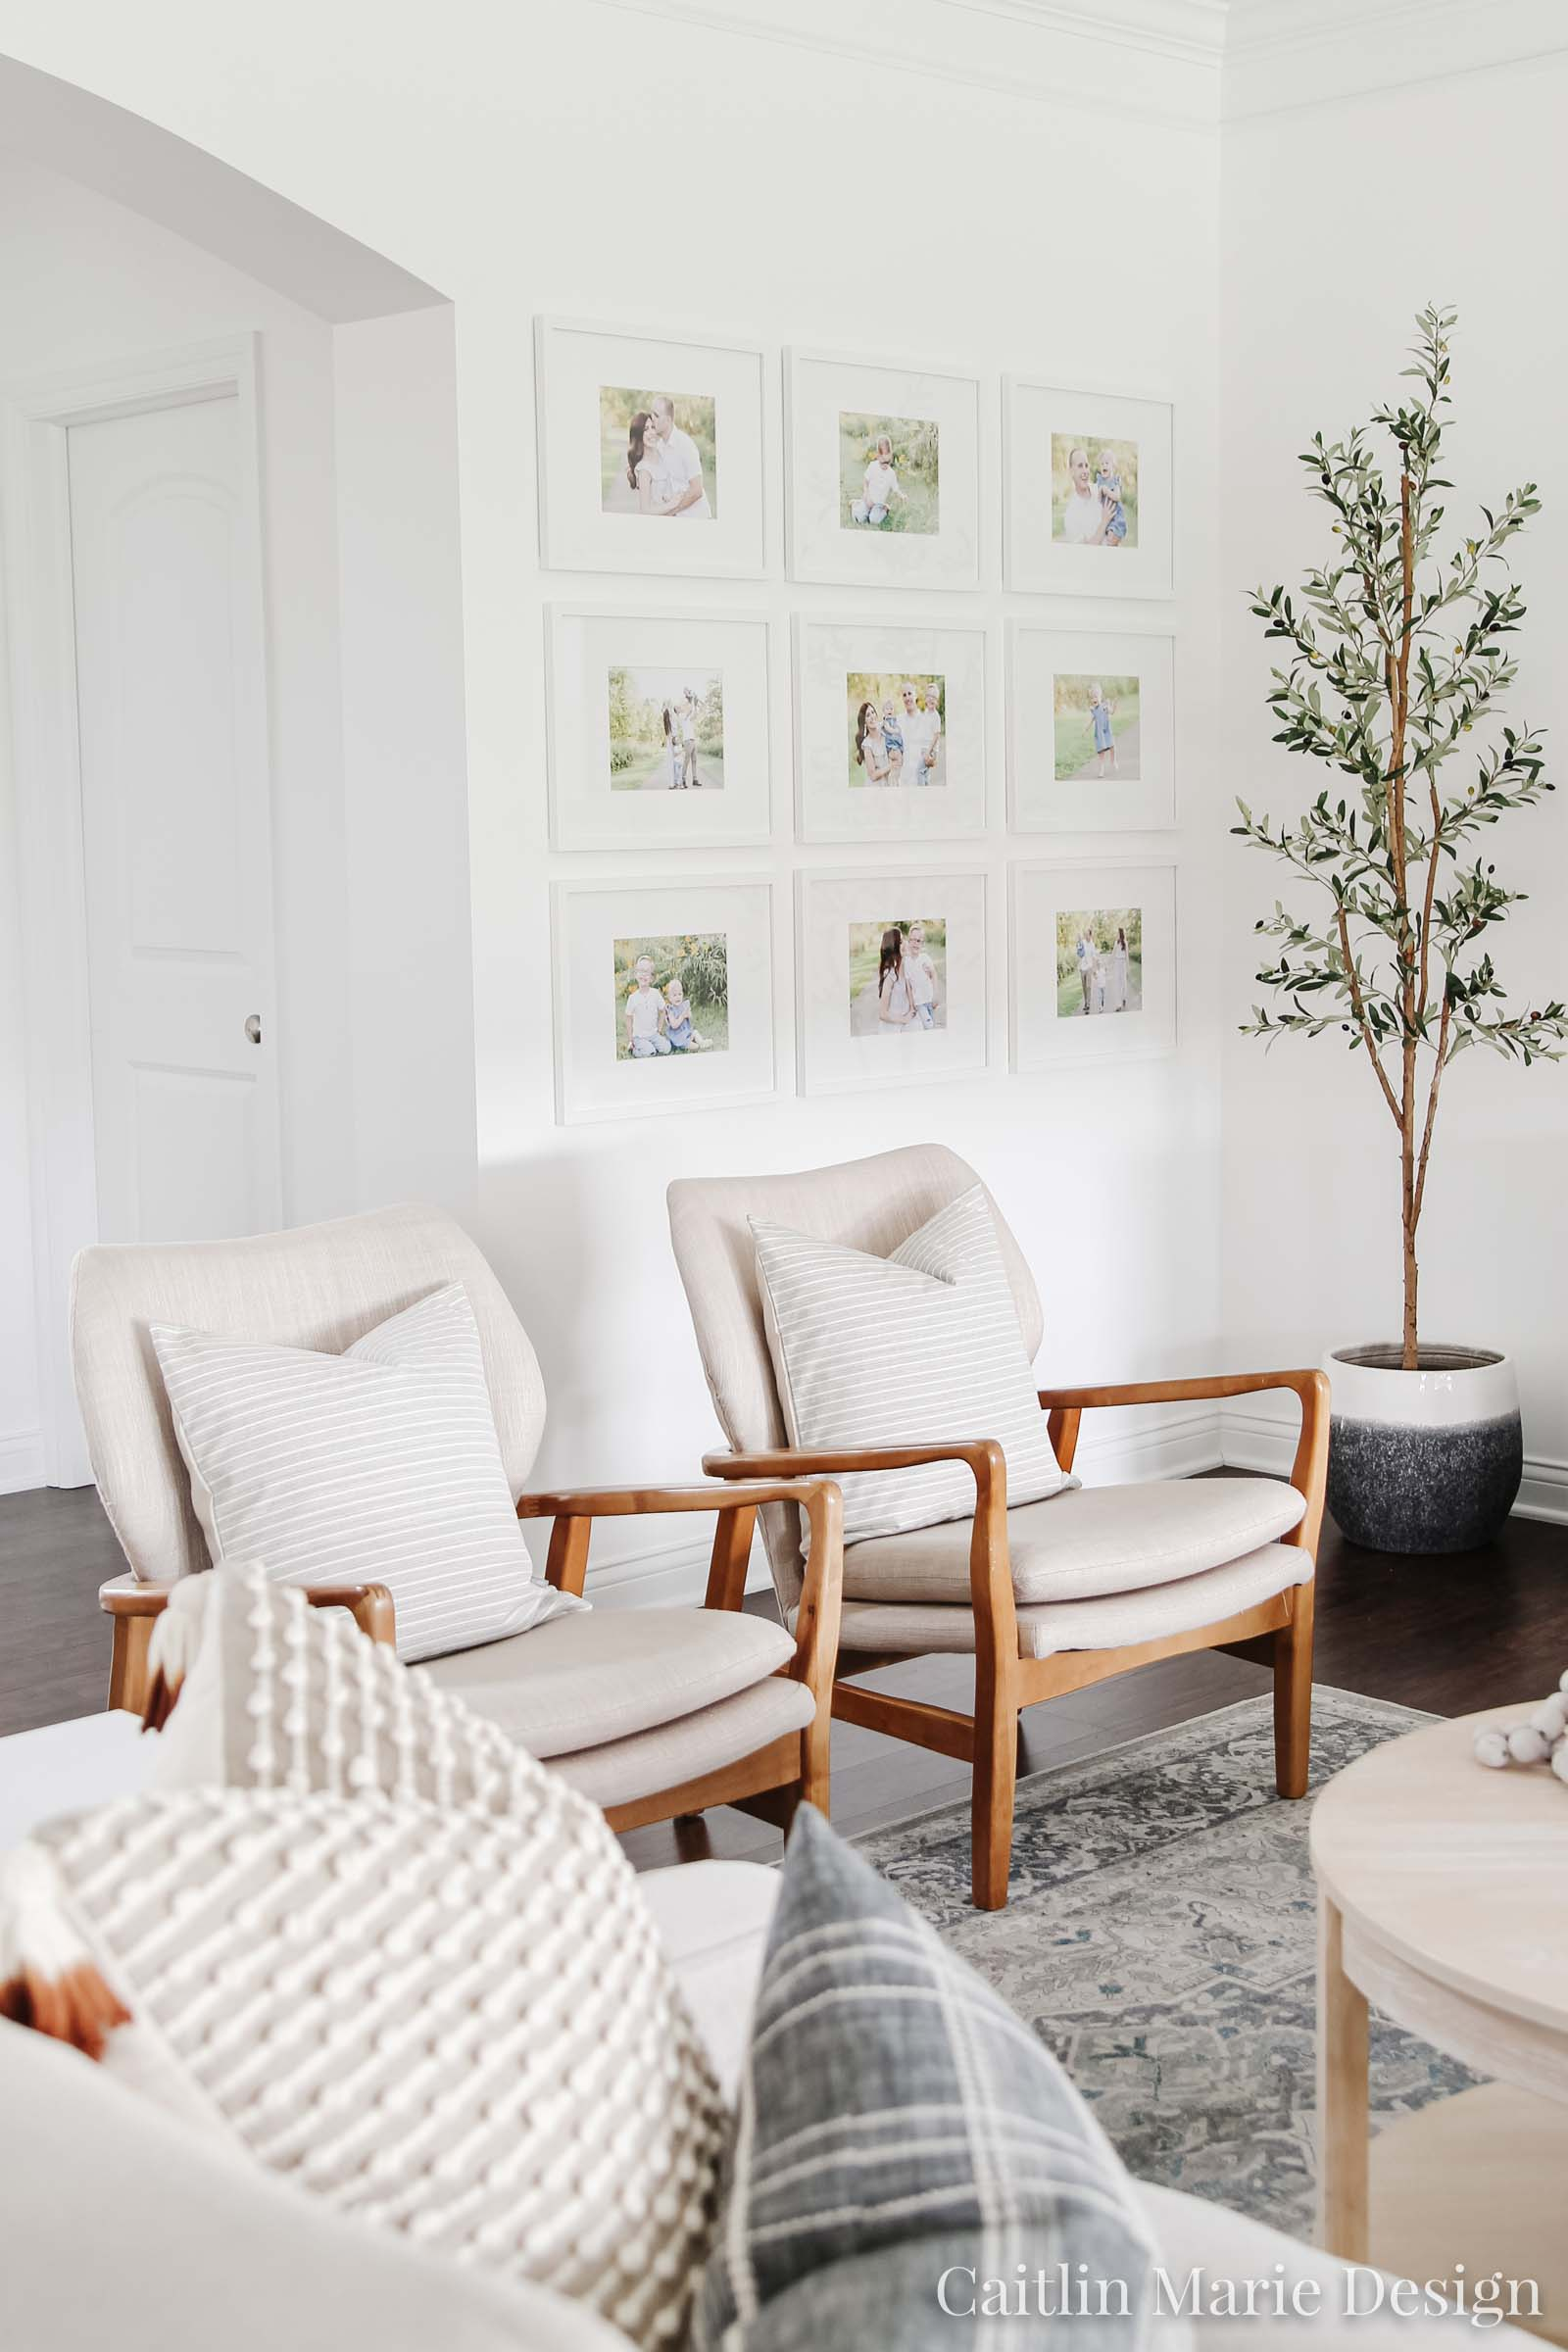 Living Room, Ruggable rug, wood accent chairs